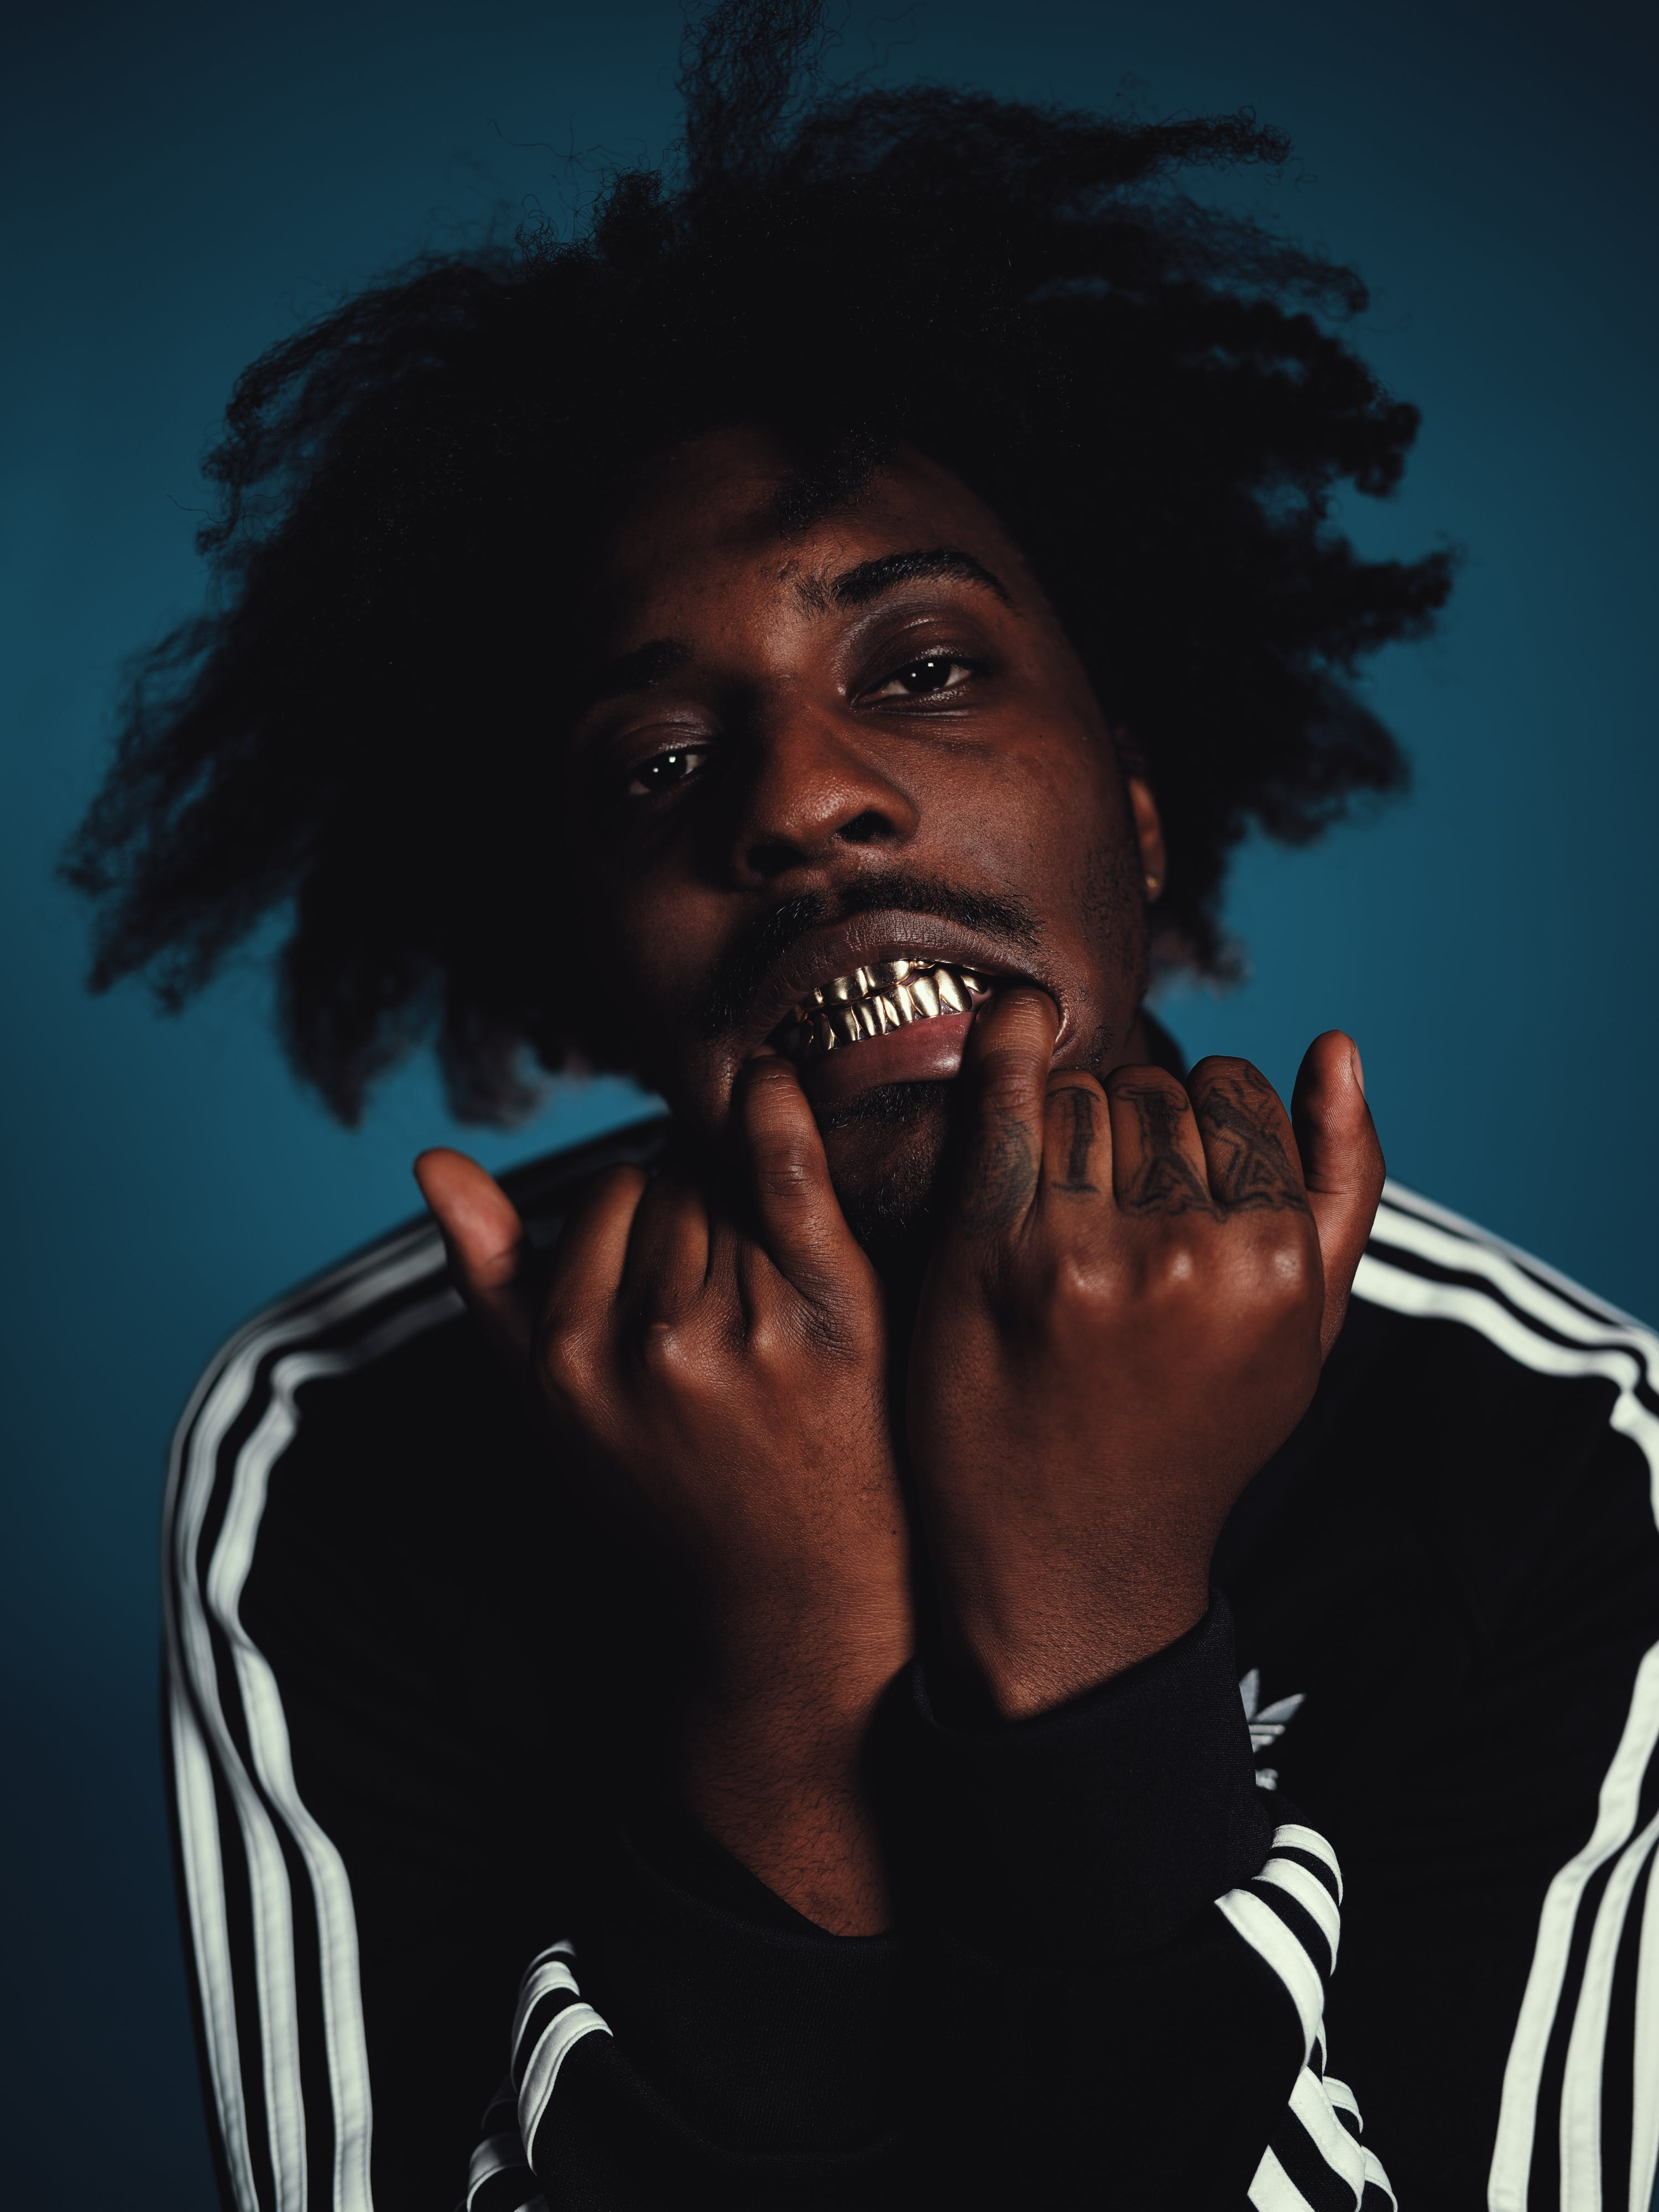 SEAN LEON 1 of 1 Snoop Dogg takes us to church with a weed infused Gospel album